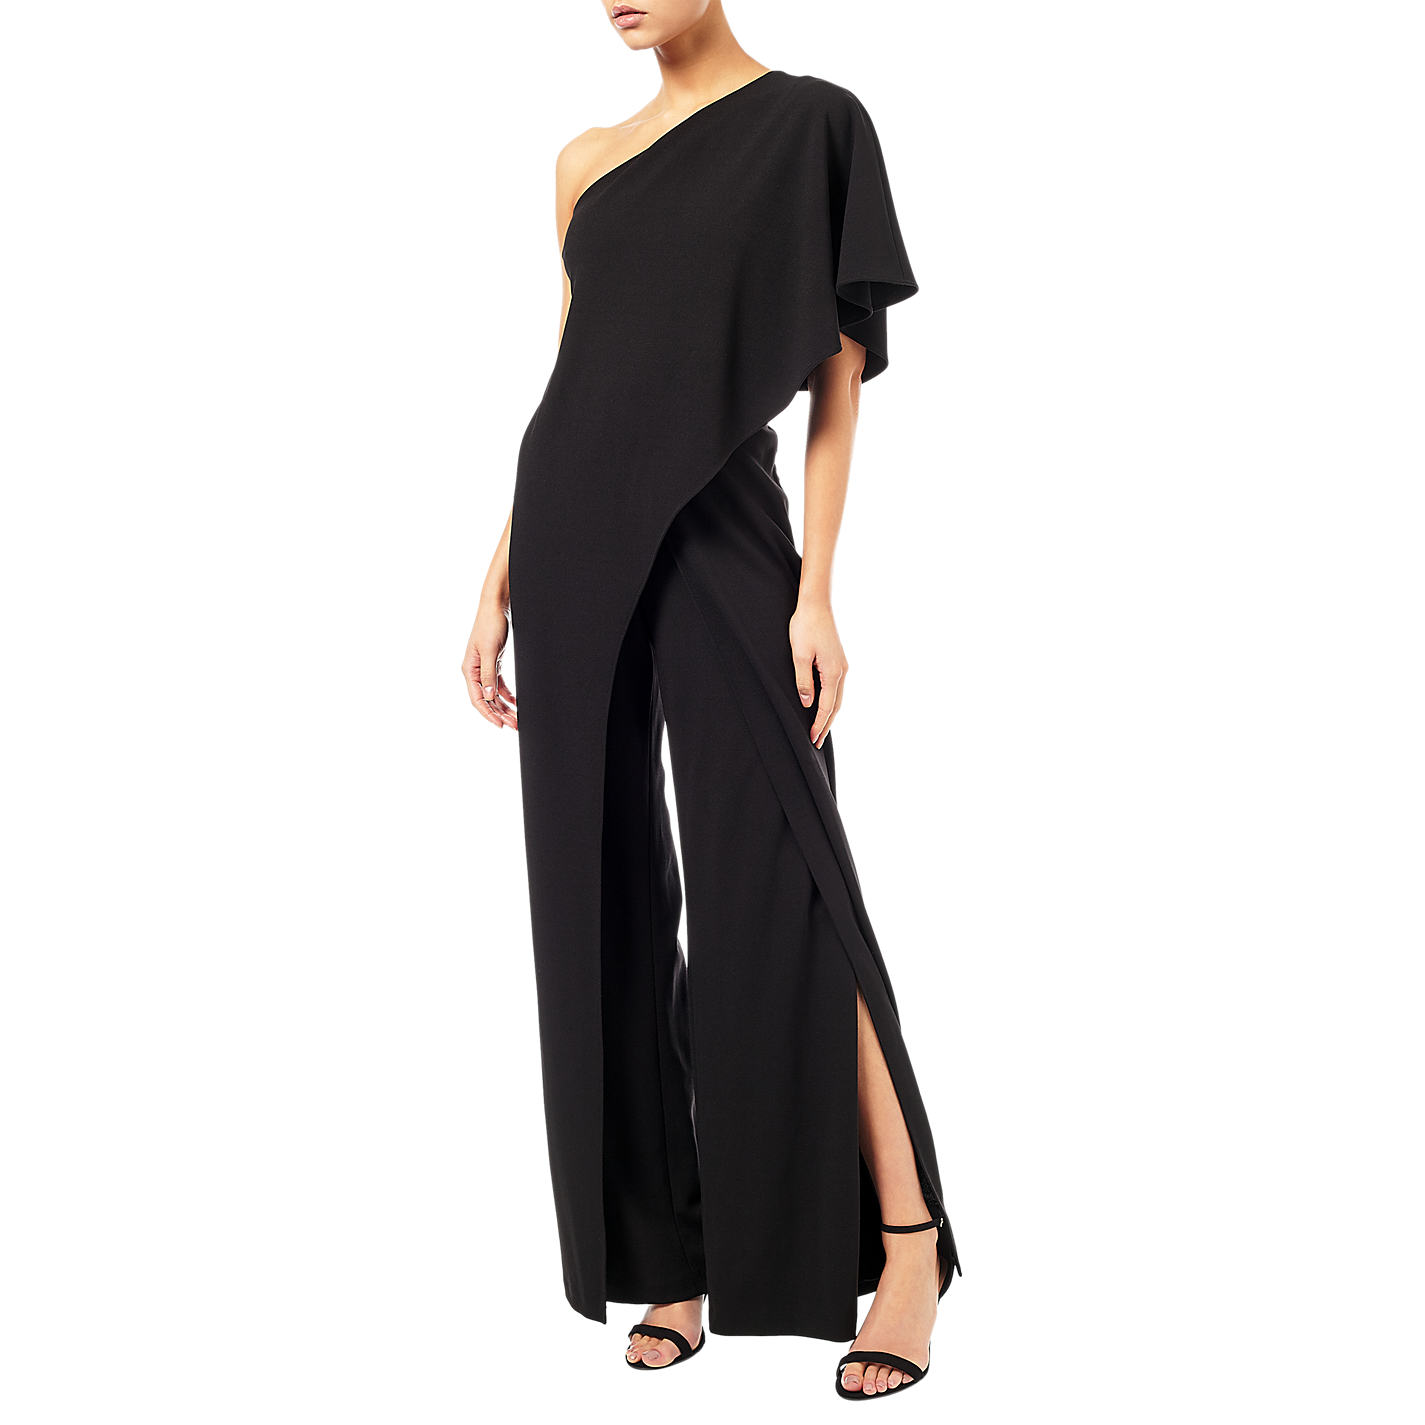 2c444cbb8809 Adrianna Papell One Shoulder Jumpsuit Sz 18W Mrsp  199 Black ...